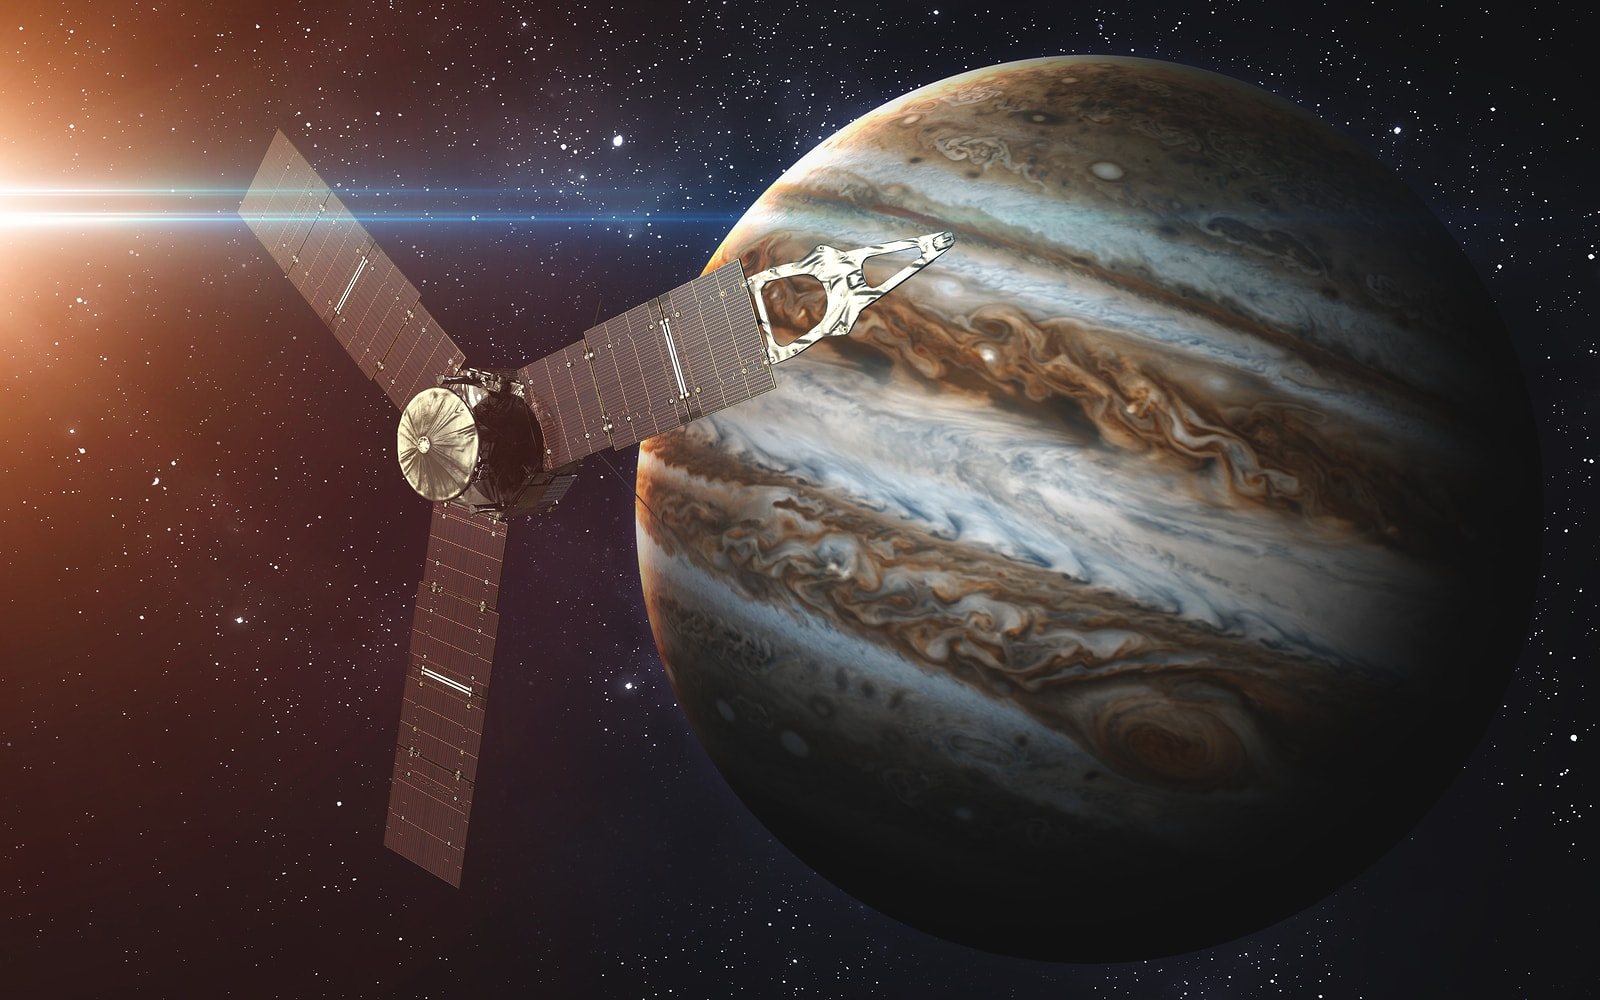 Jupiter completes one rotation around its axis in just under 10 hours.